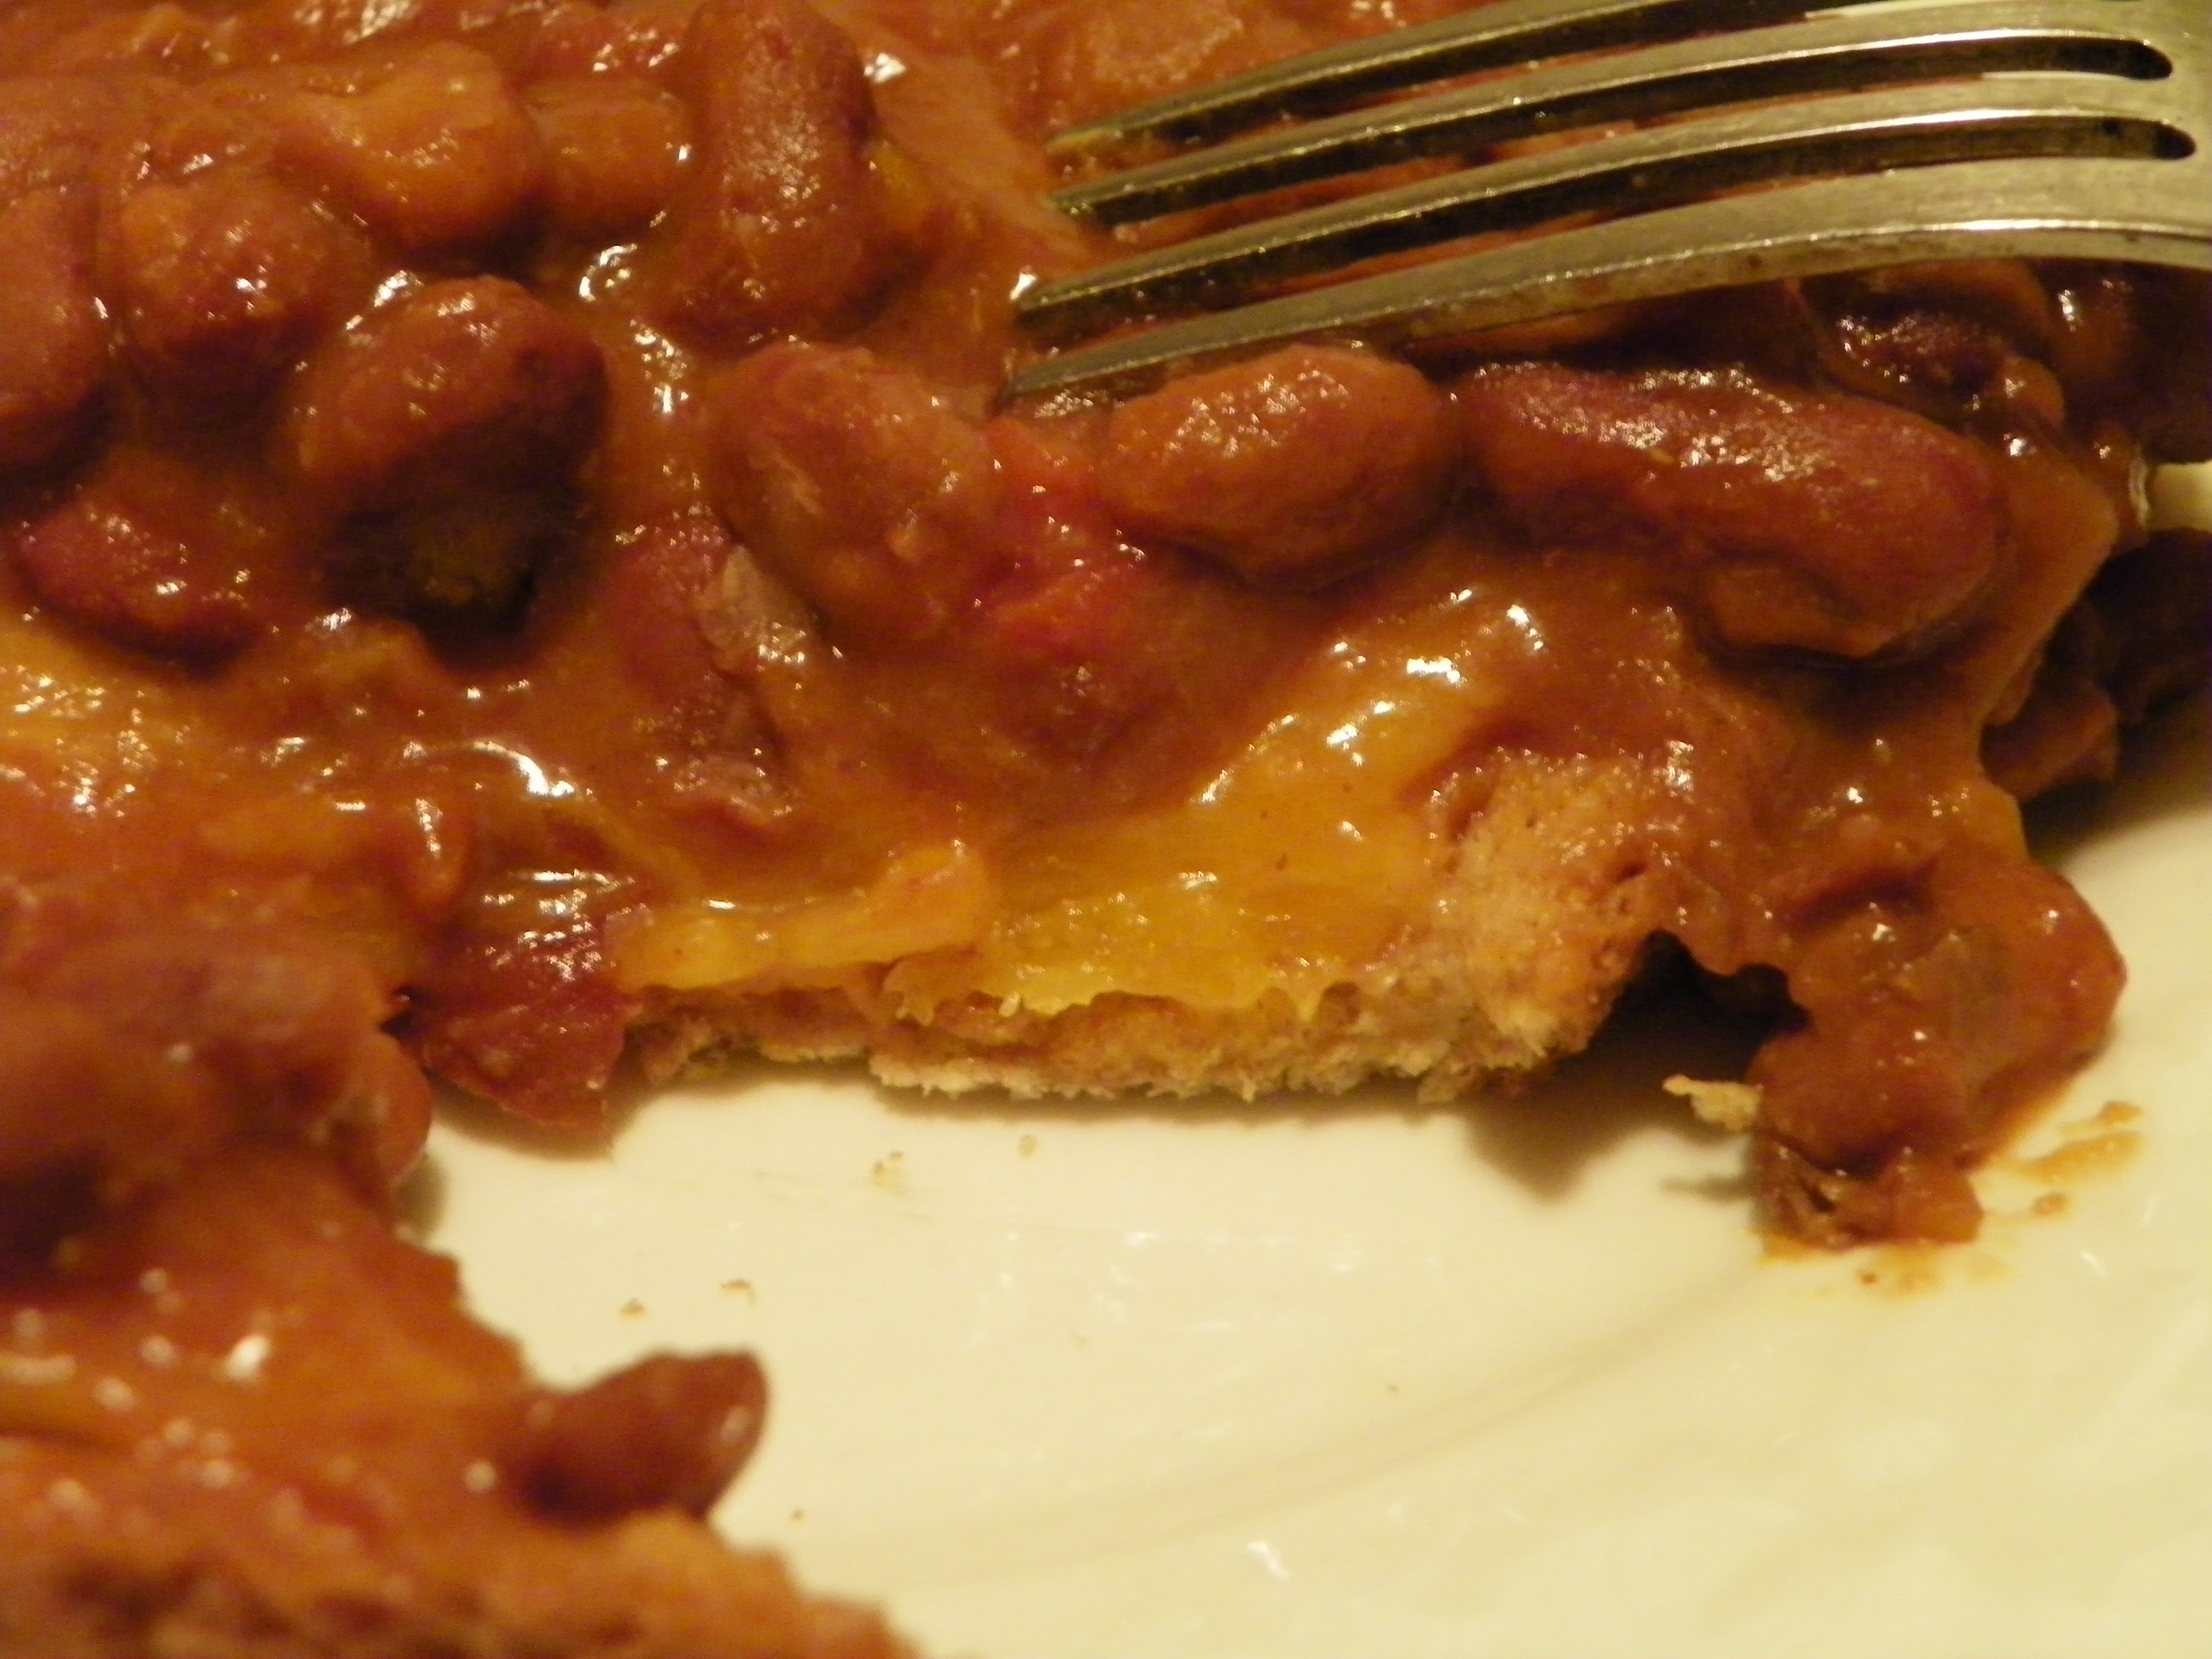 is your favorite sandwich creation? Have you ever eaten beans on toast ...